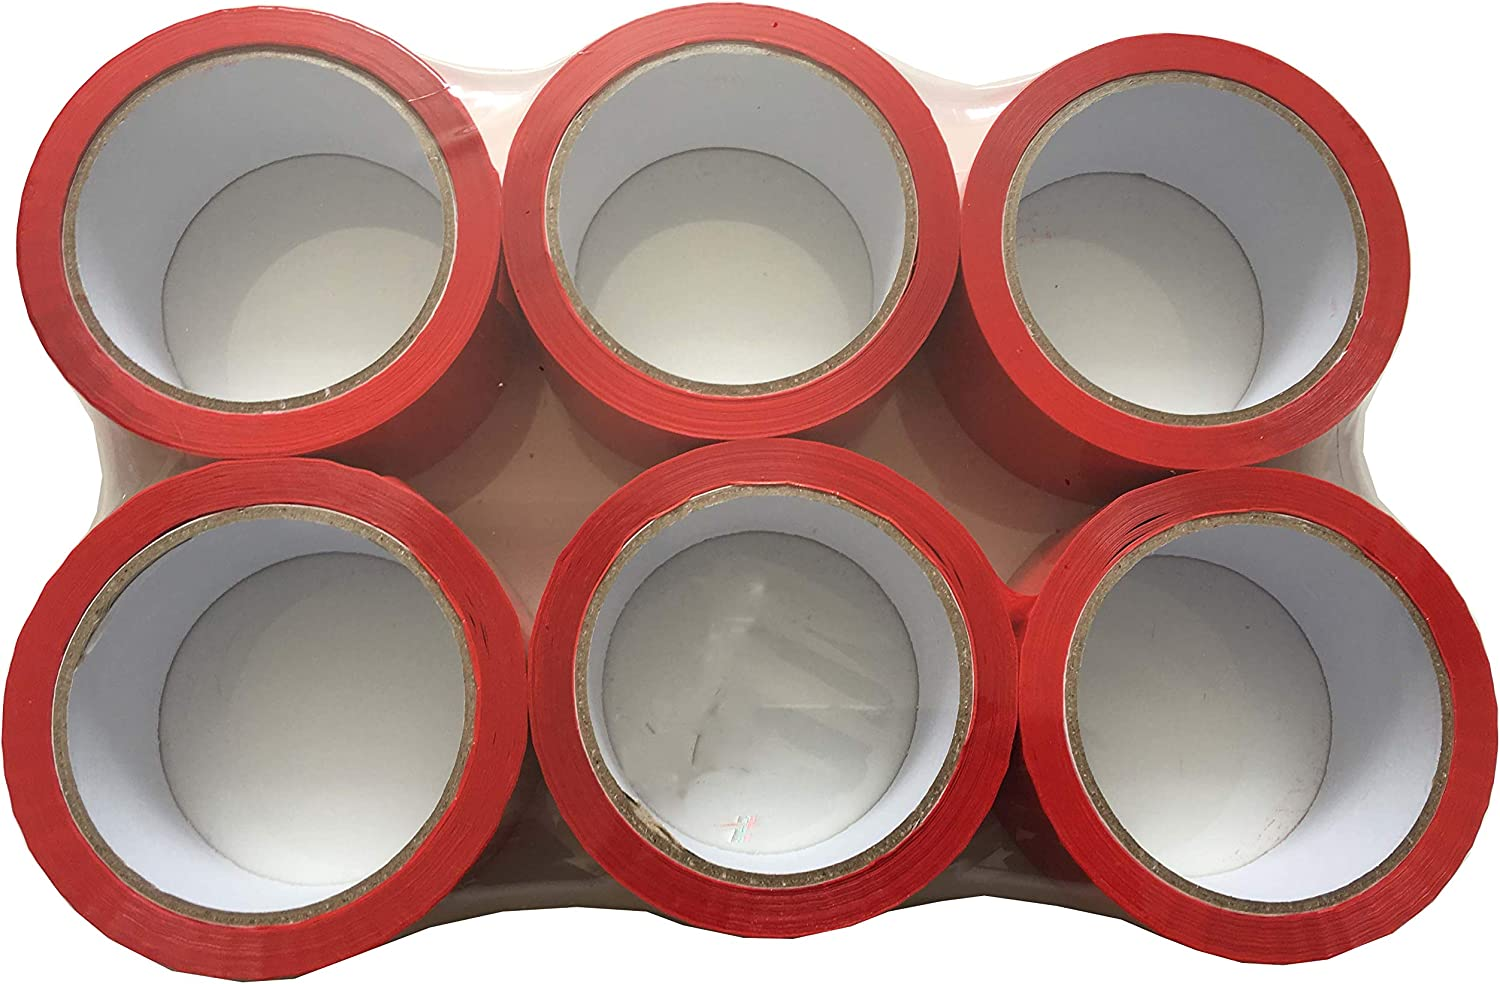 Brown Buff Tezraftaar/® 6 Rolls Parcel Packing Tape 48mm X 66M Coloured Strong Packaging Tape for Parcels and Boxes